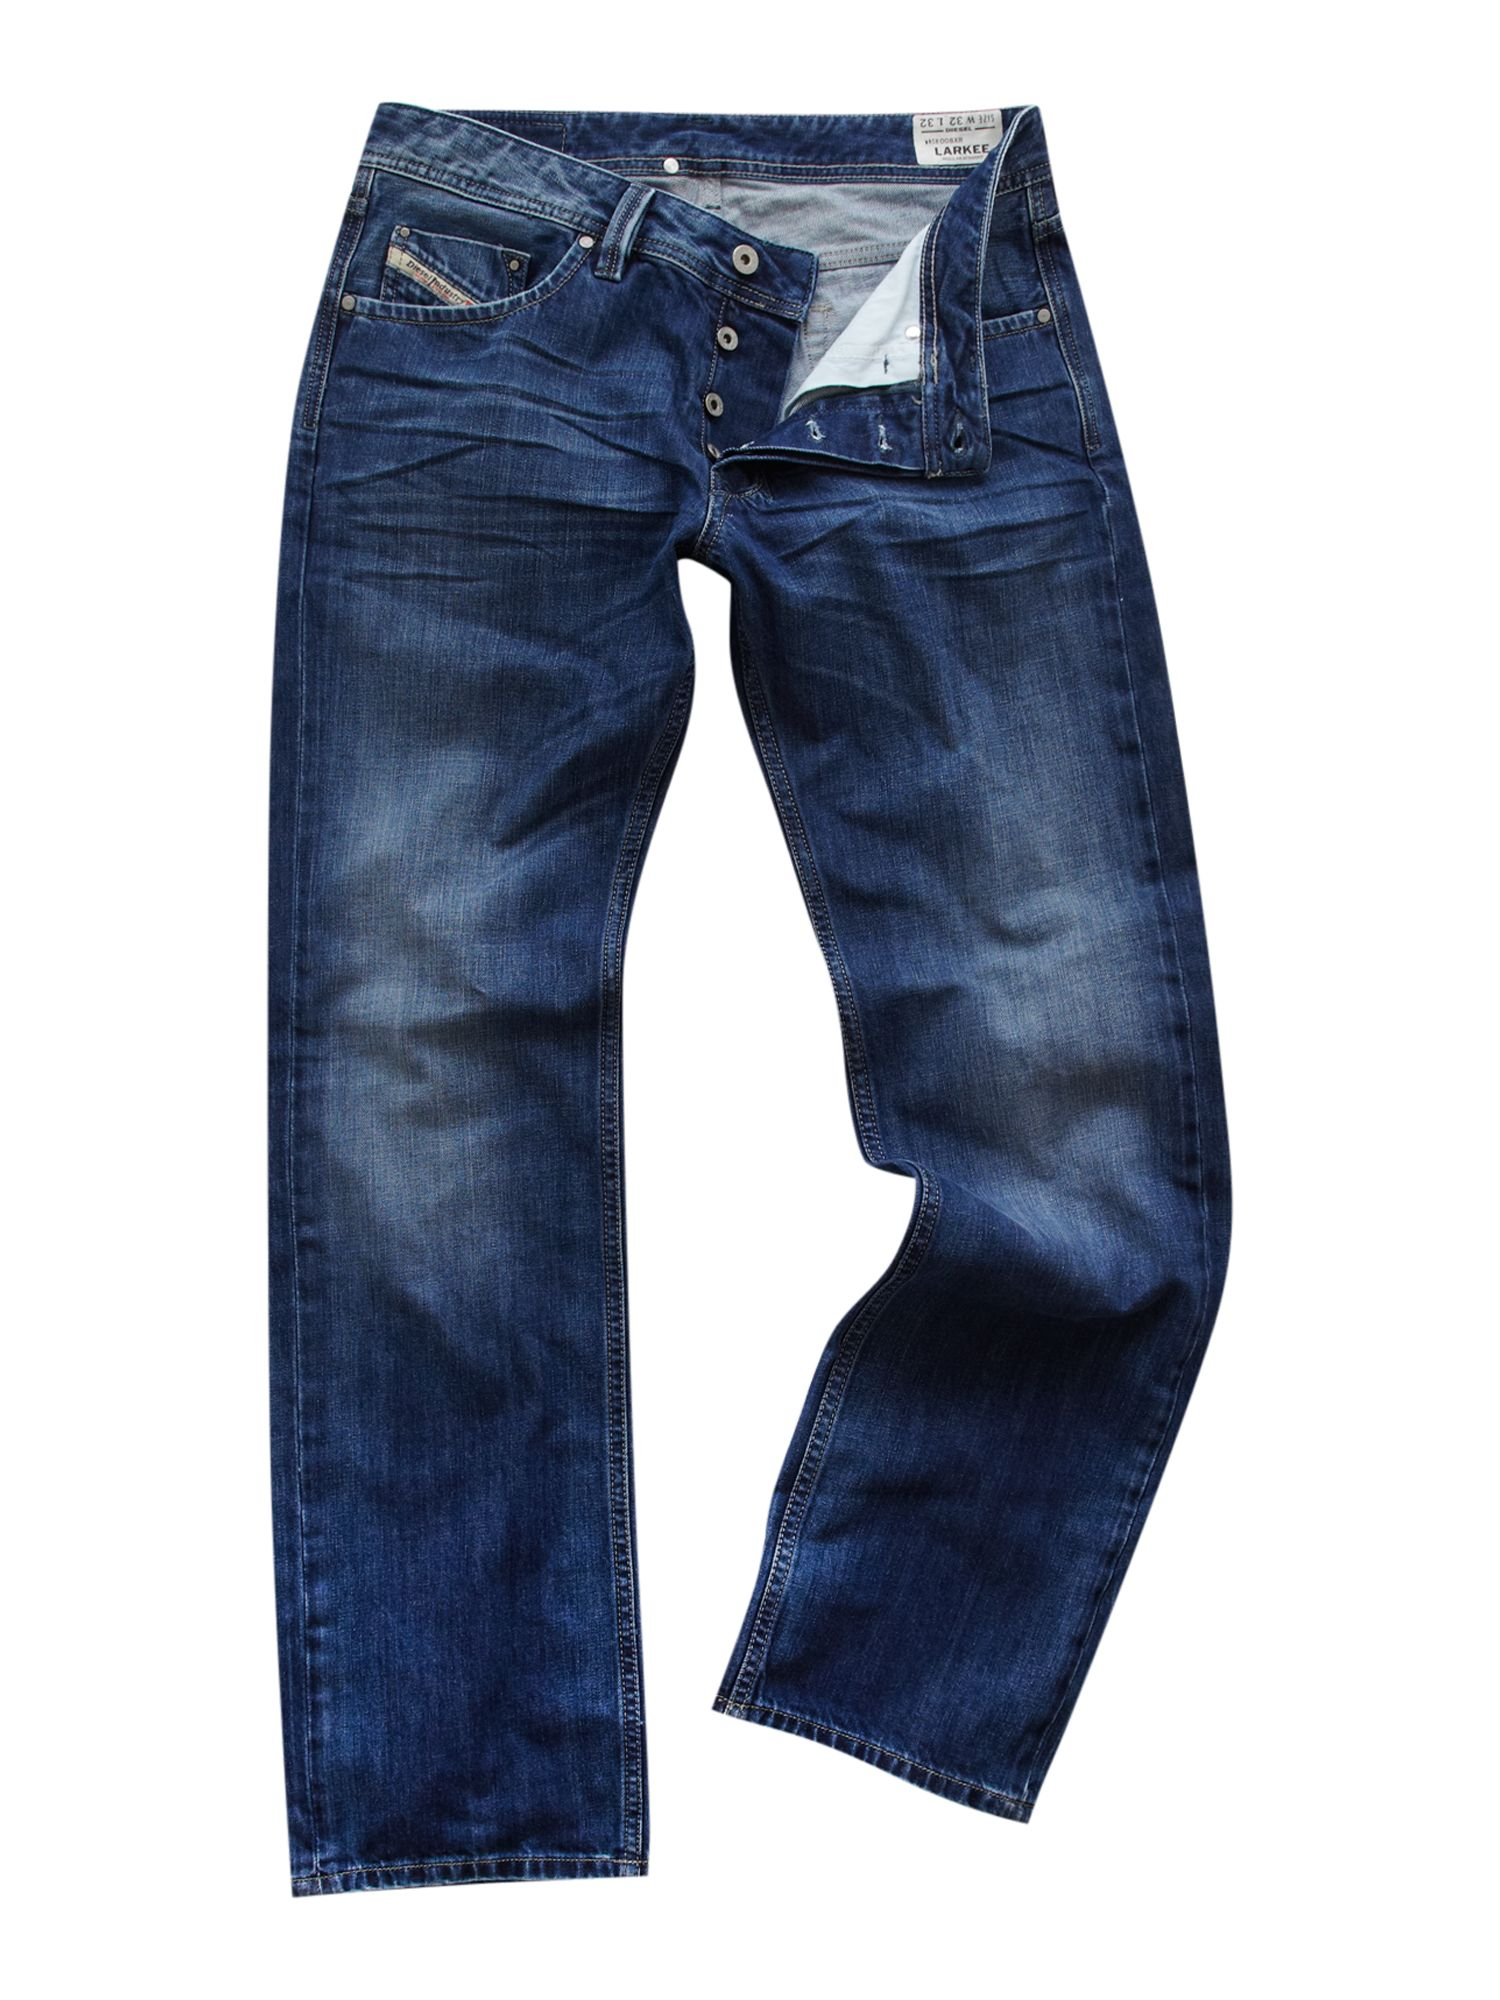 Larkee 8XR straight fit jeans